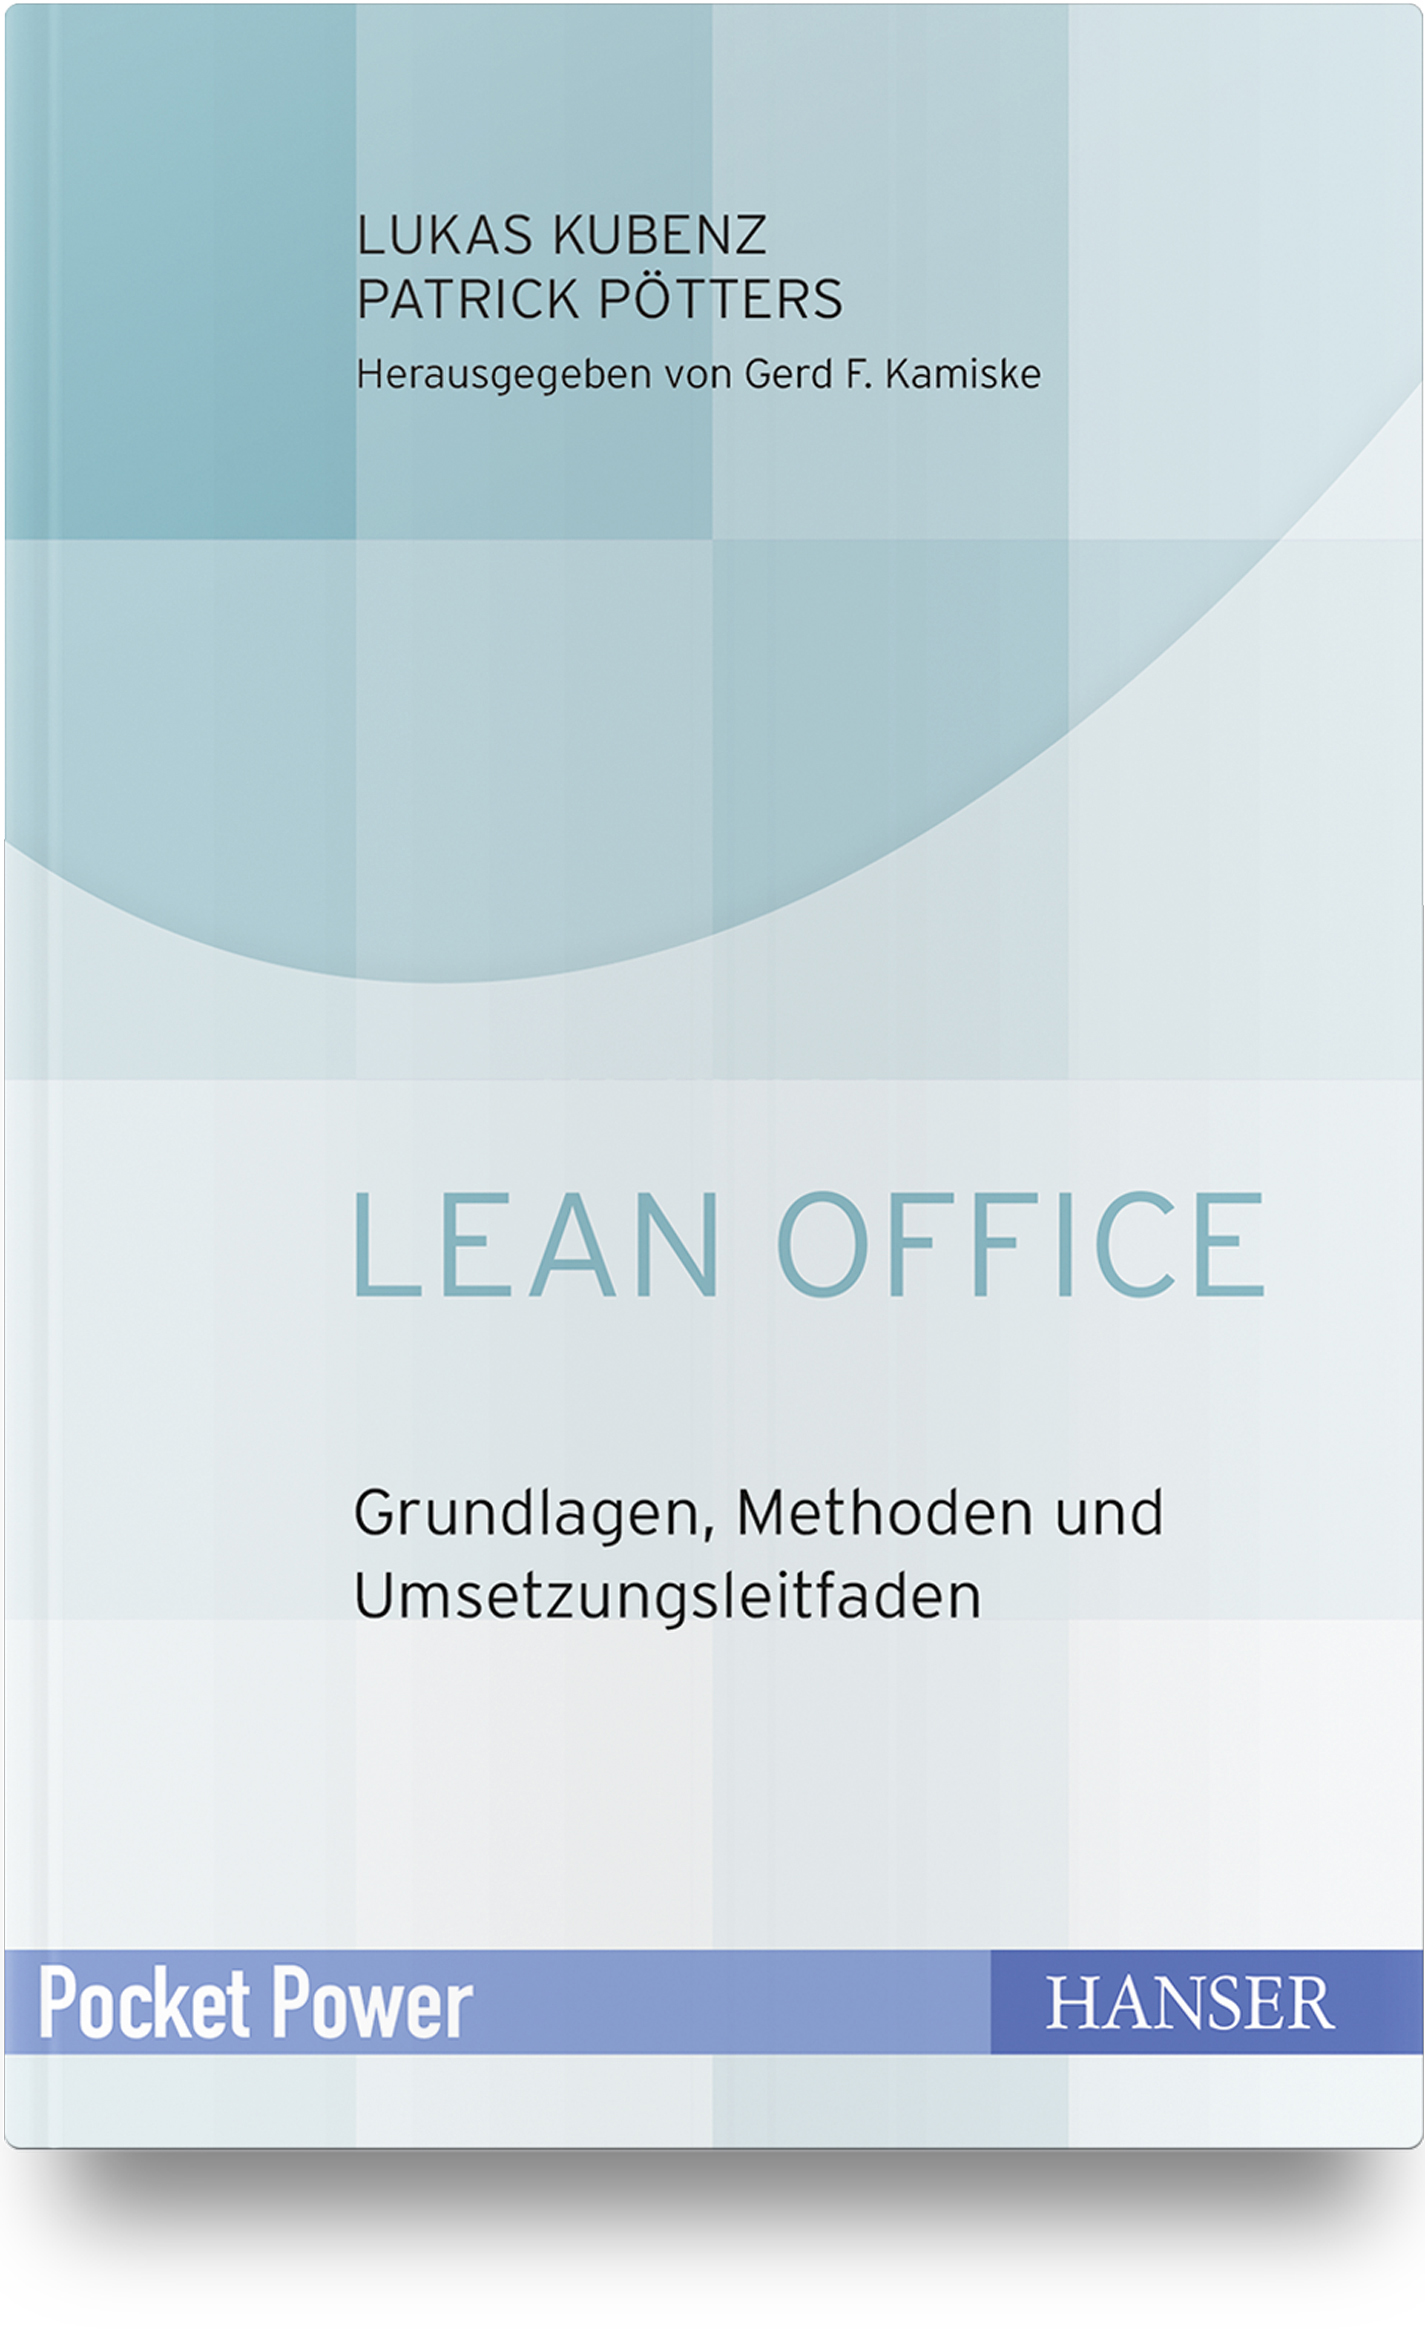 Kubenz, Pötters, Lean Office, 978-3-446-45530-6